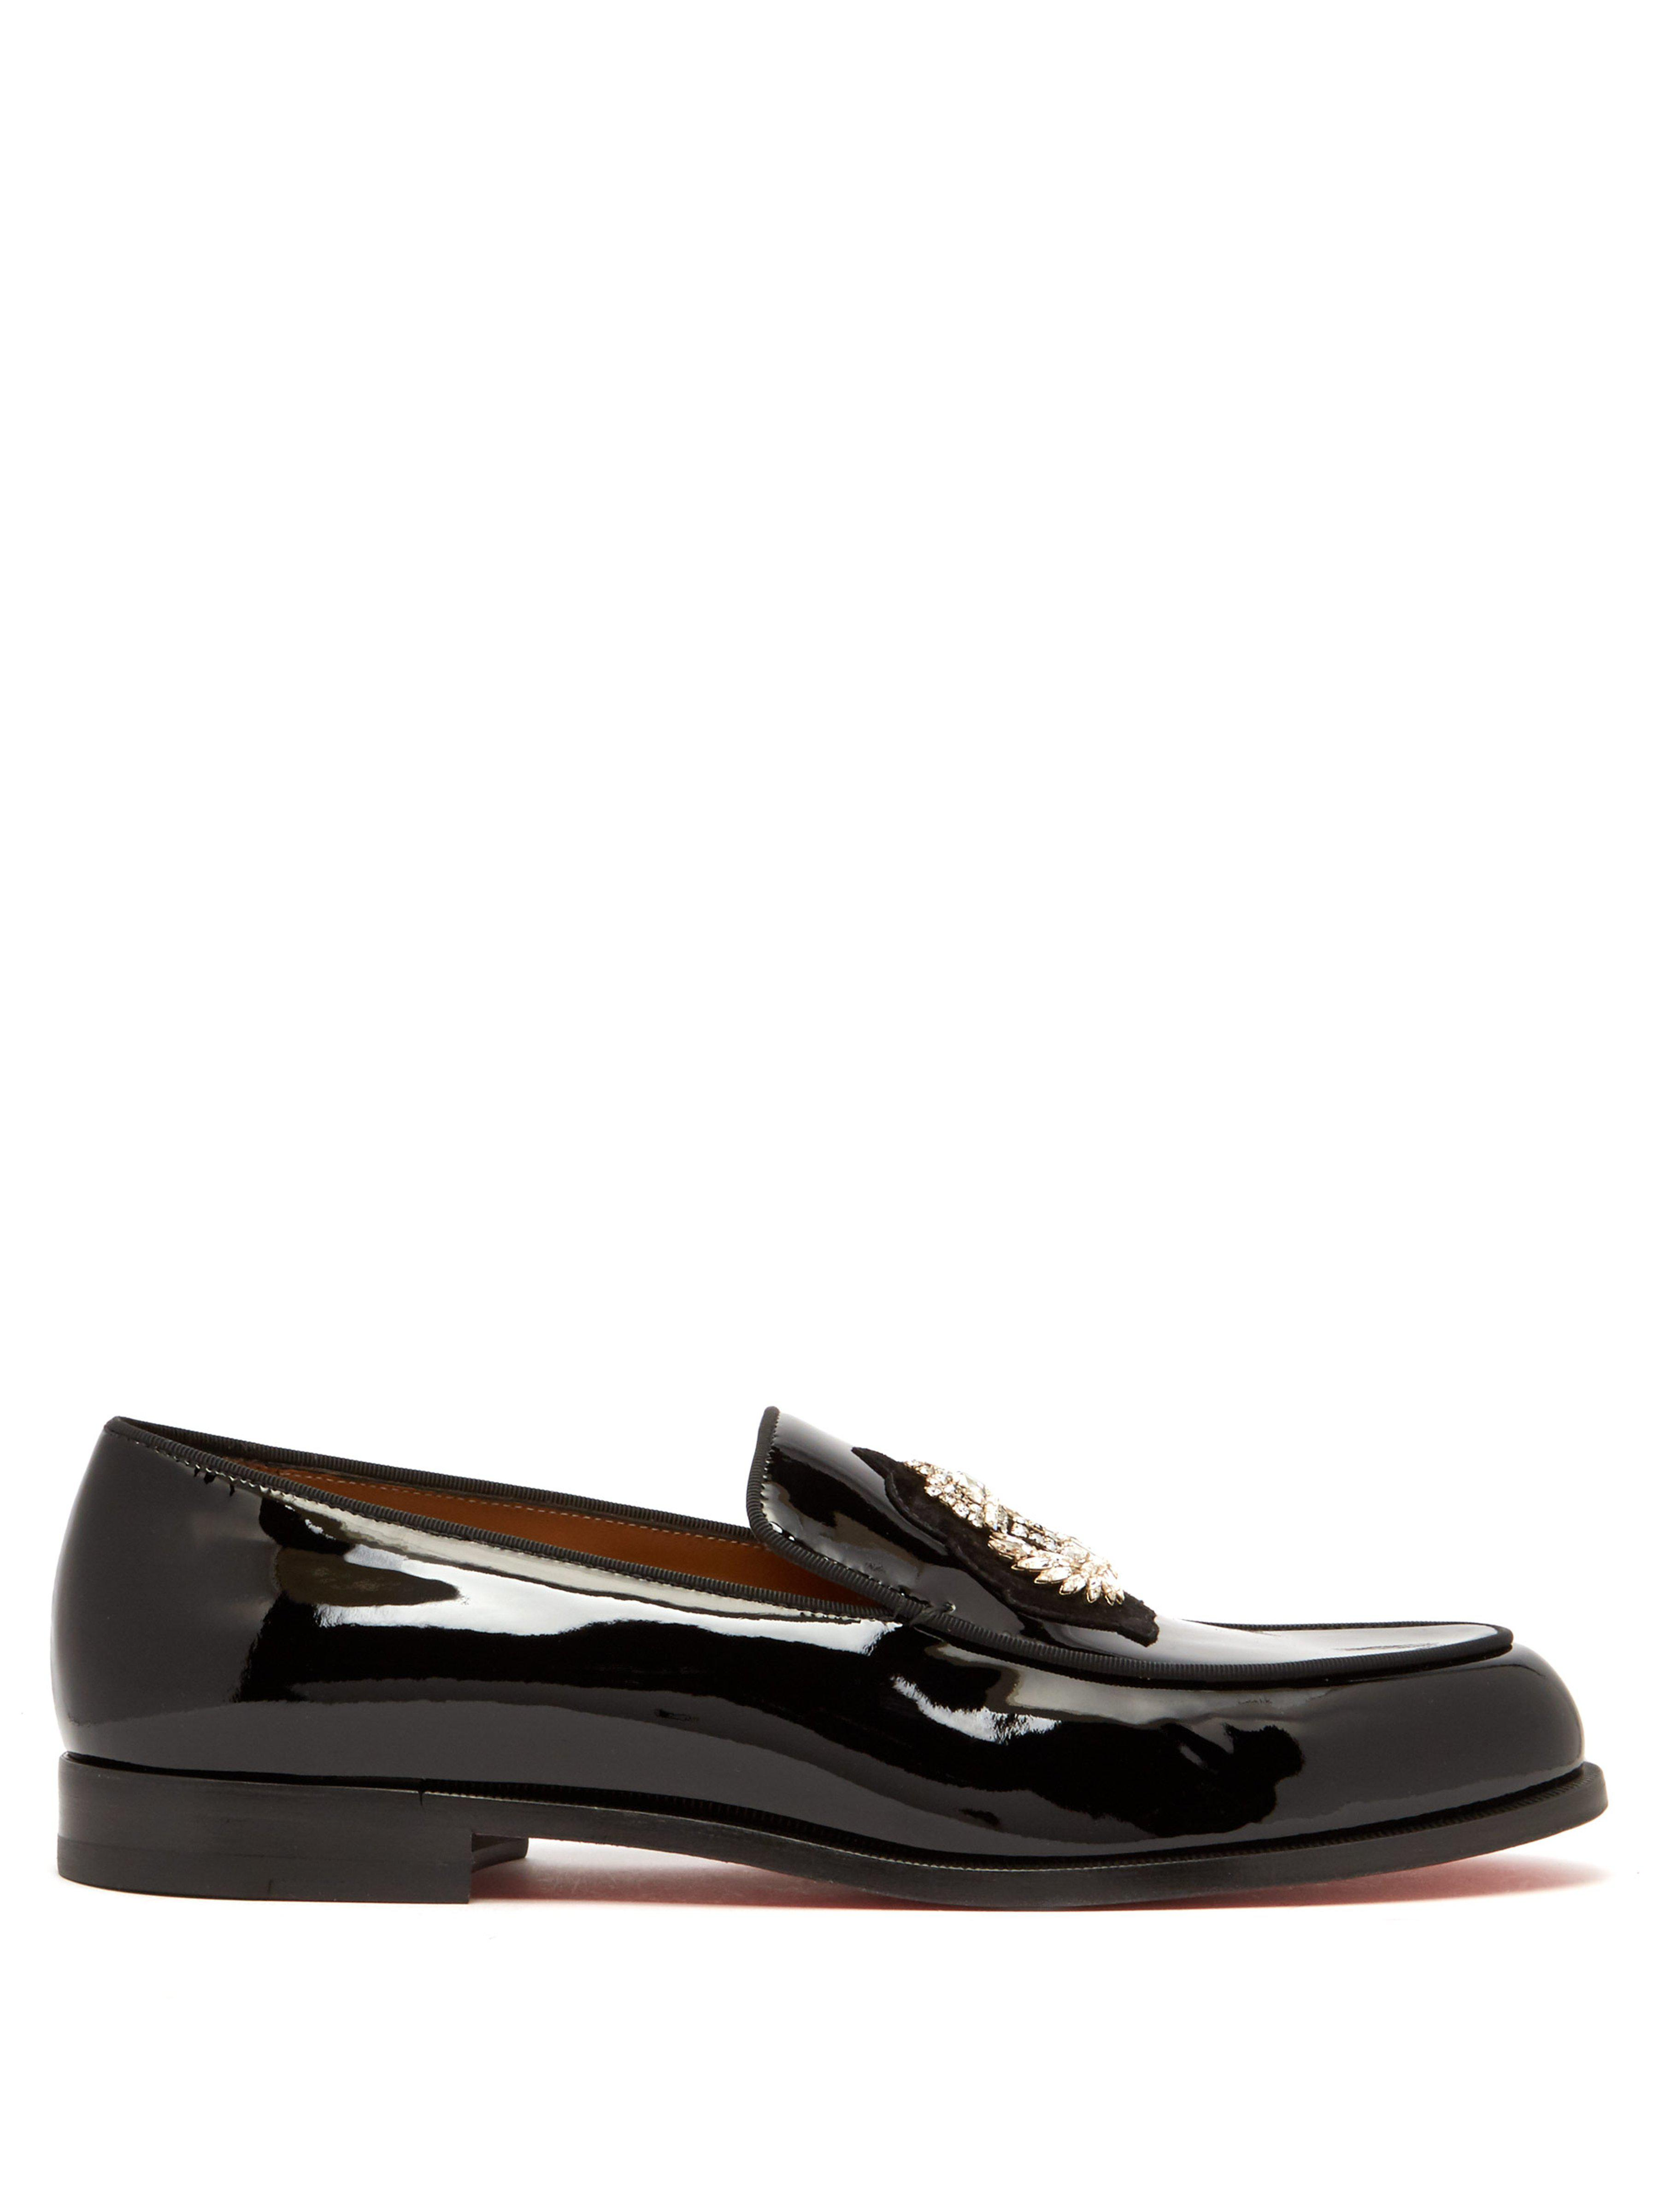 62660eeac8fb Christian Louboutin. Men s Black Laperouse Crystal Embellished Patent  Loafers